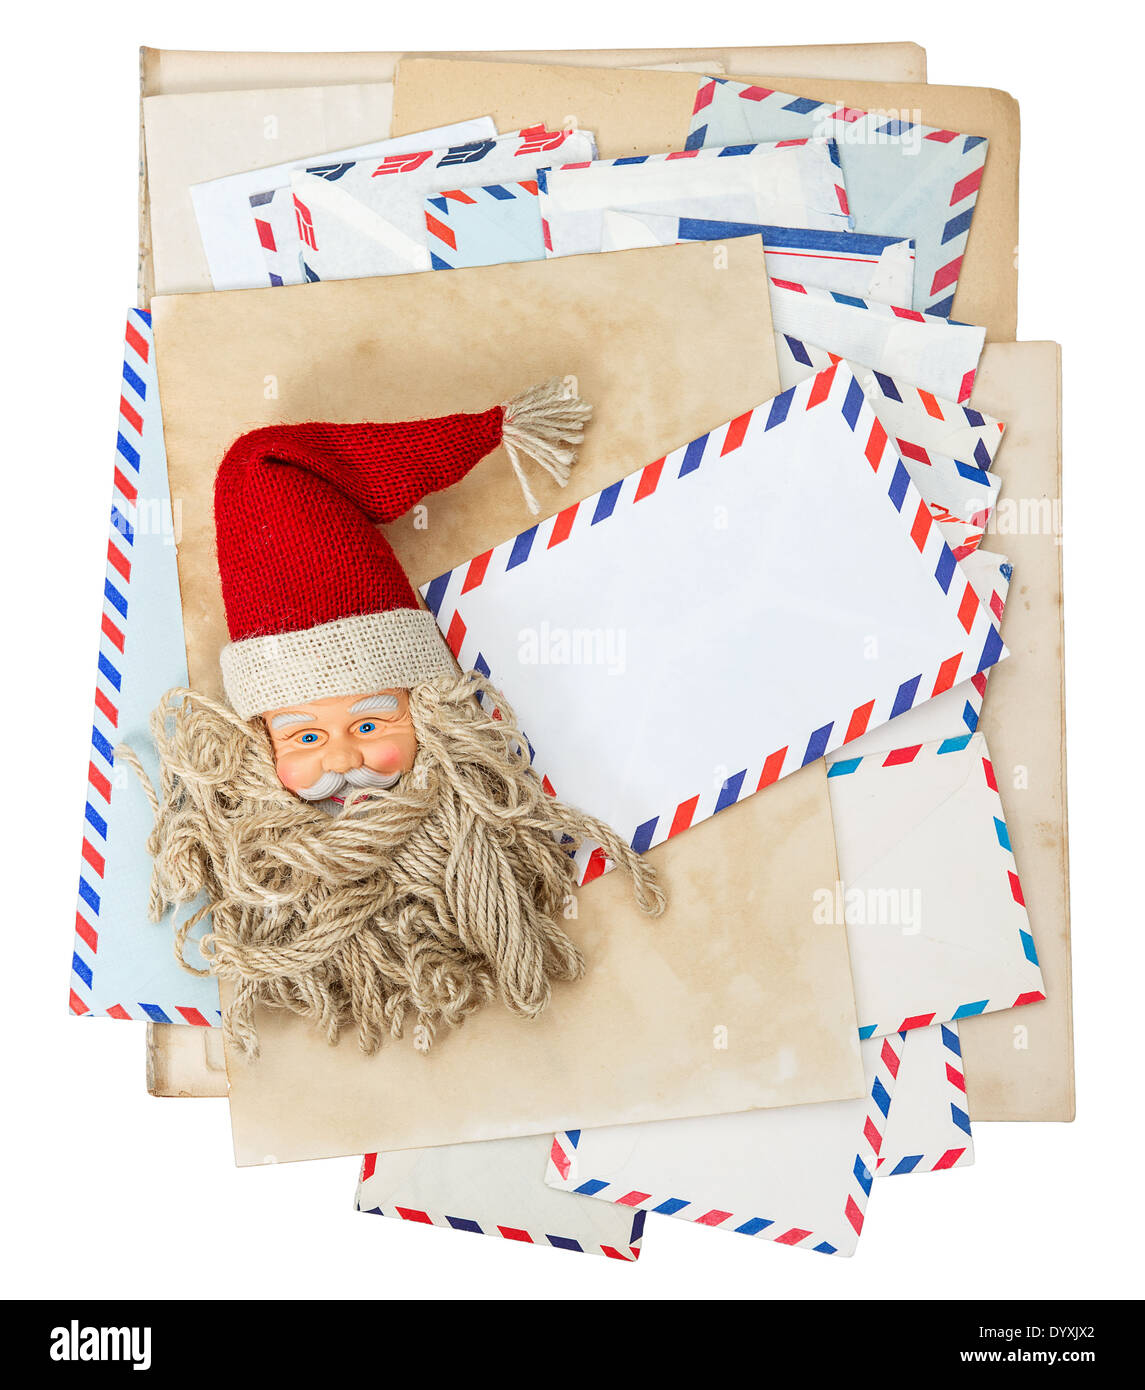 Christmas Post Envelope Stock Photos & Christmas Post Envelope Stock ...